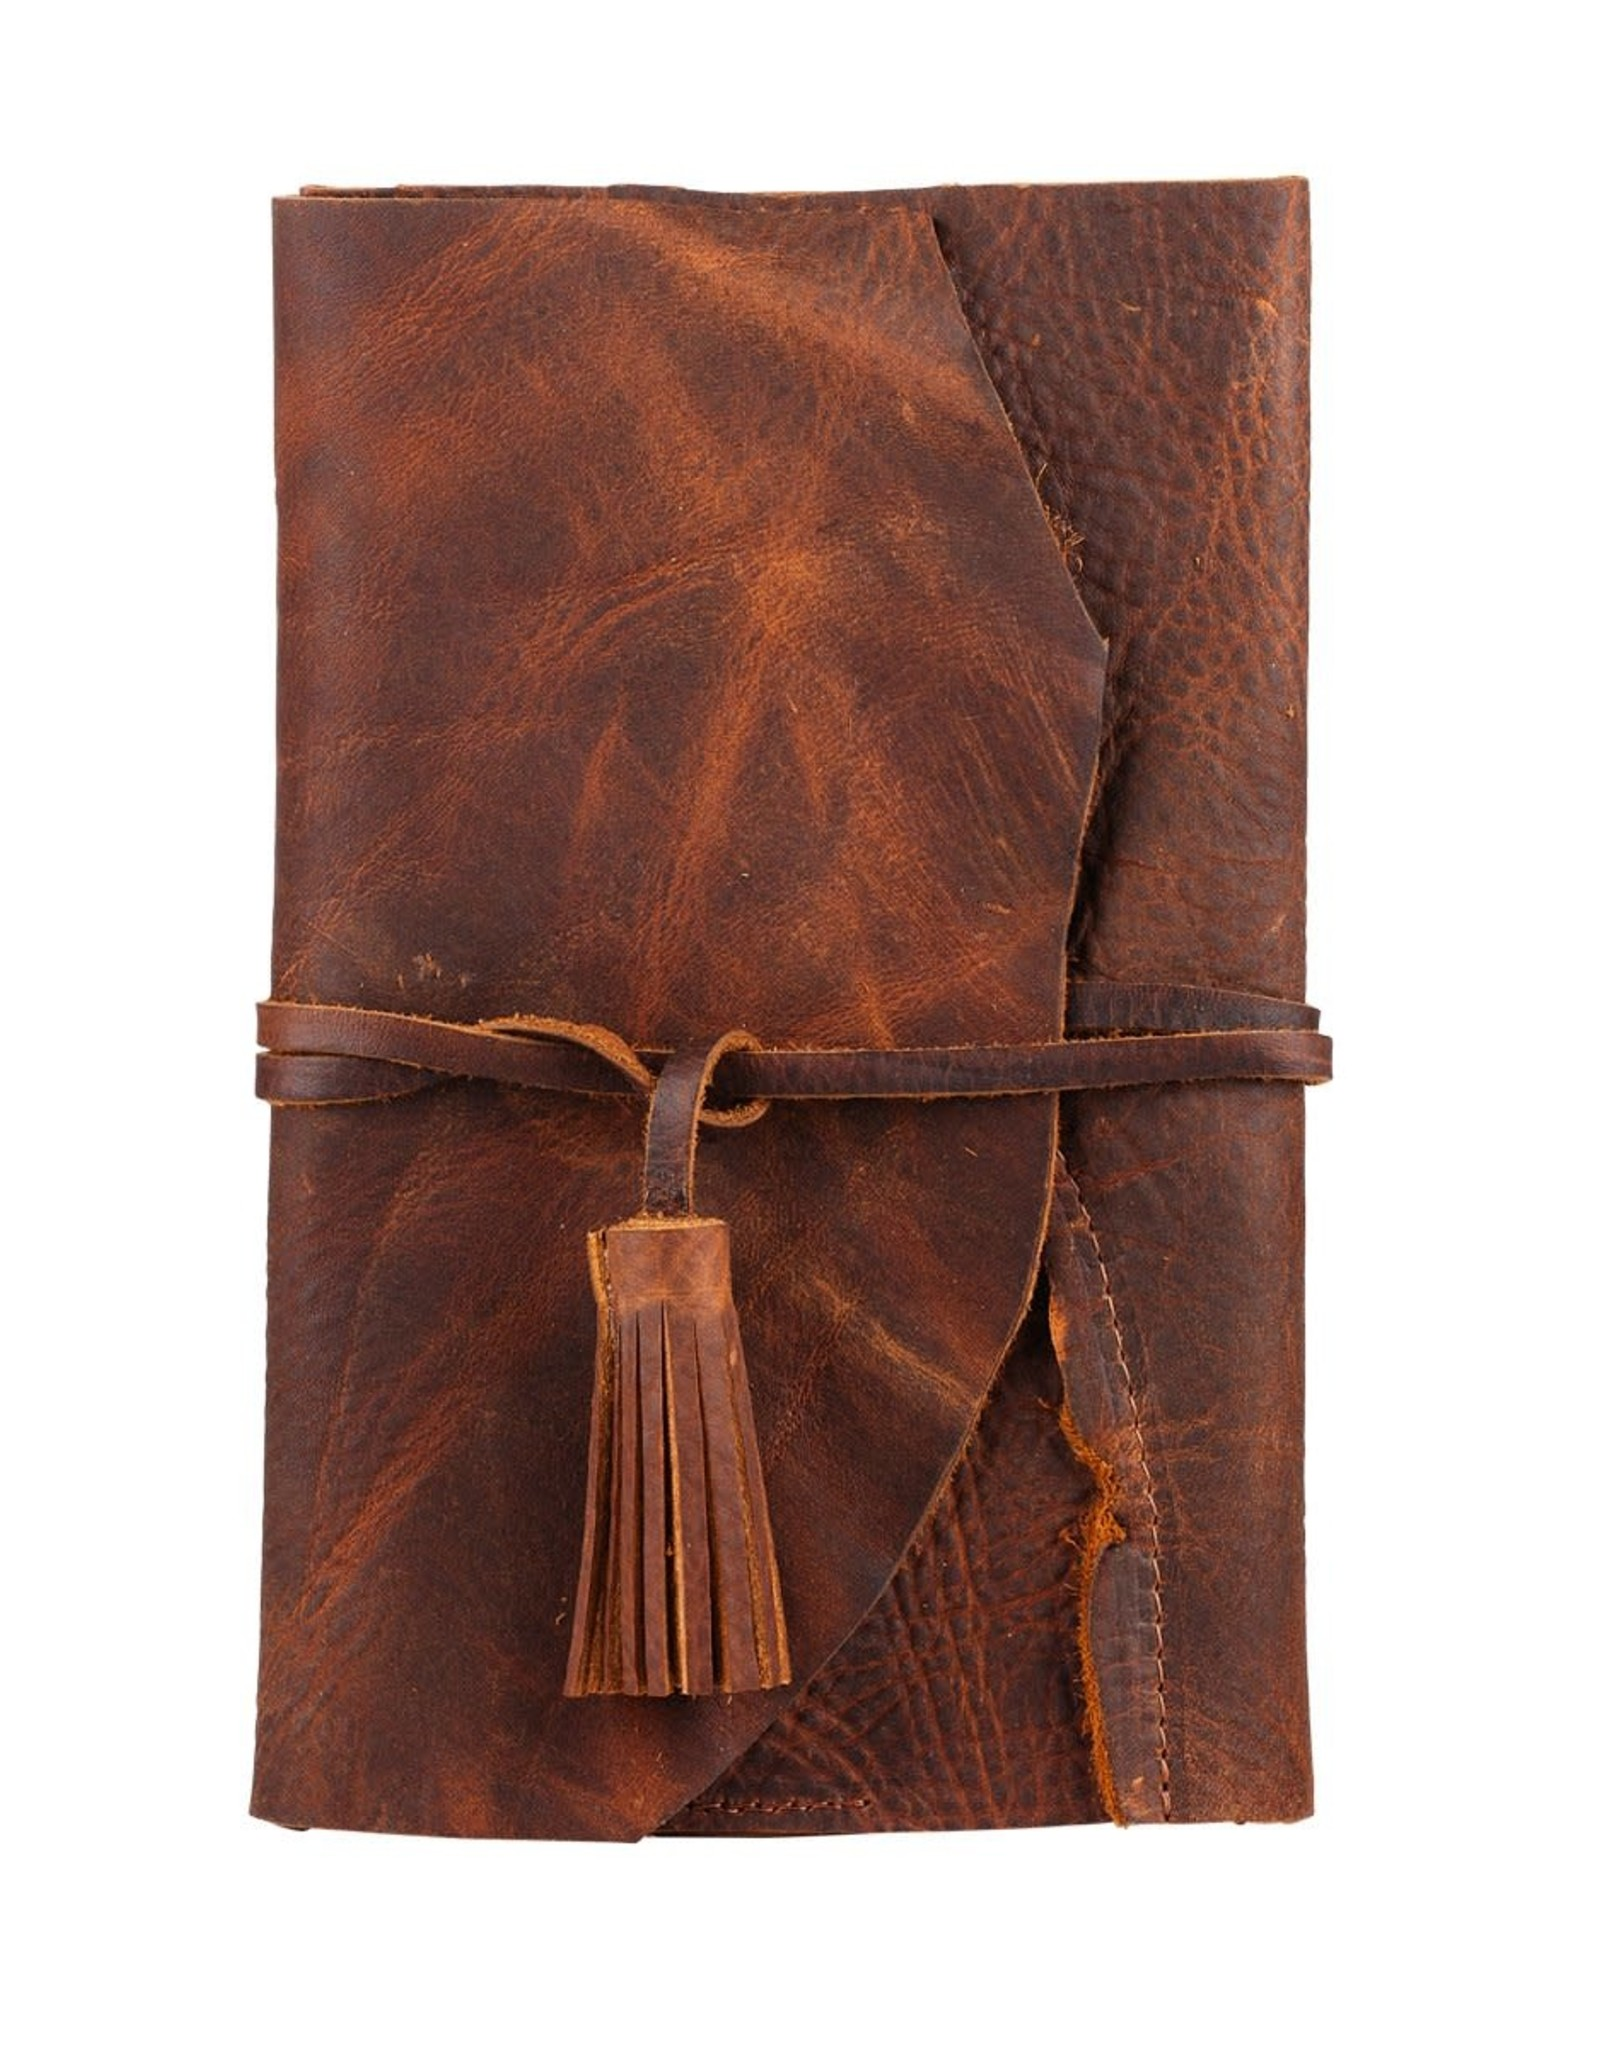 GLORY HAUS INC VINTAGE LEATHER JOURNAL